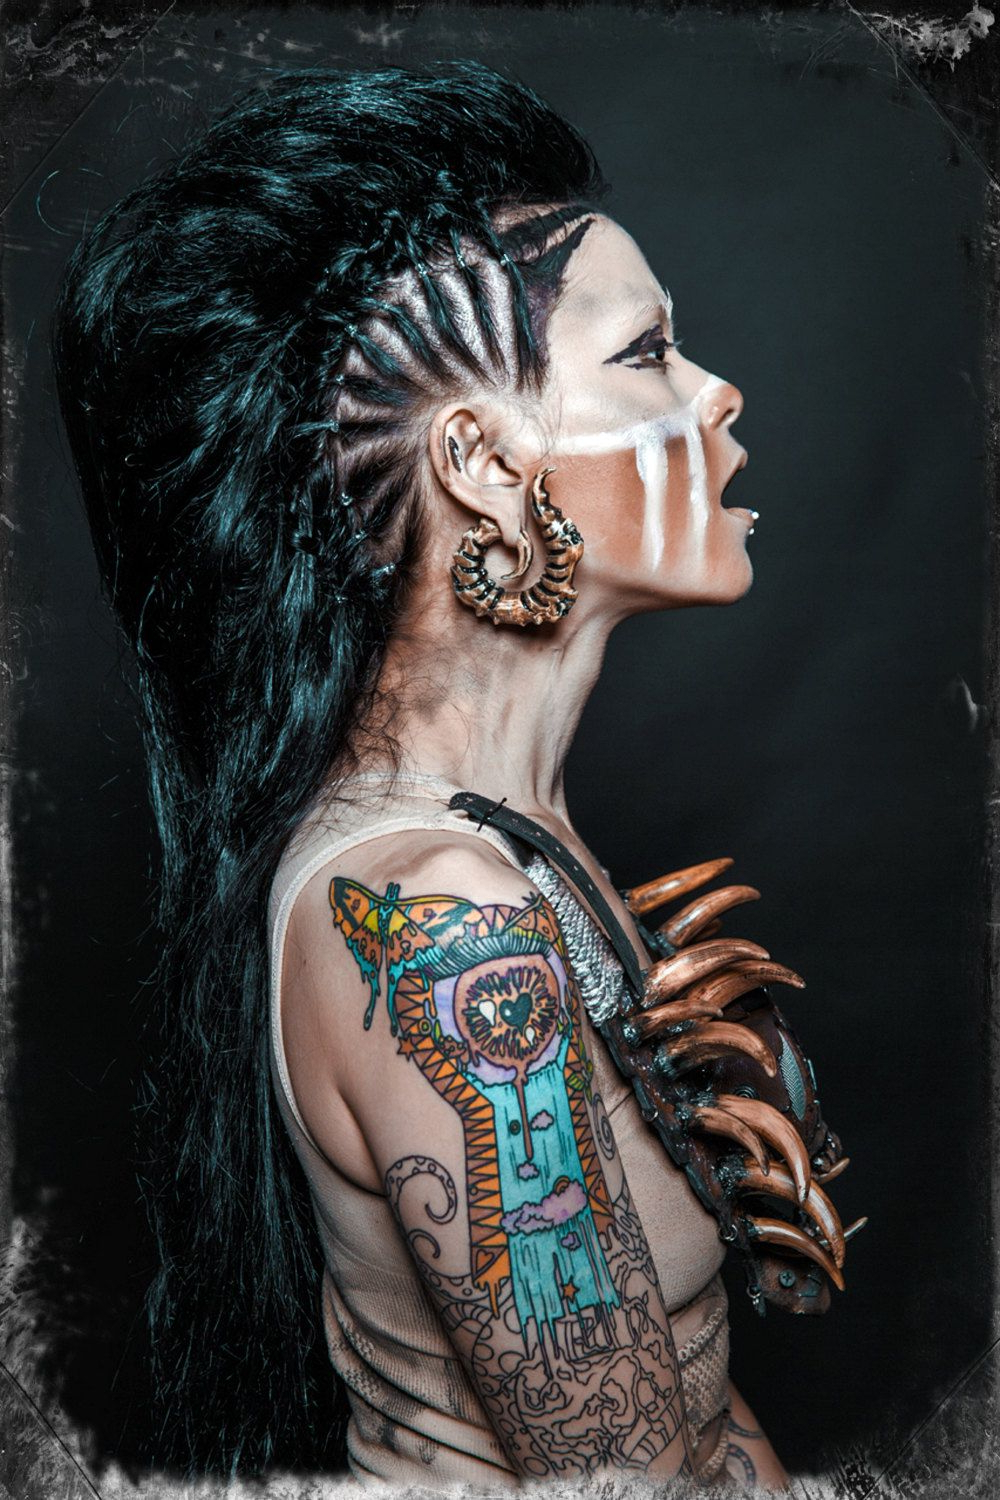 Popular Tattoo You Tonight Faux Hawk Hairstyles For Tribal Inspired Tooth Necklace And Make Up With Faux Hawk (View 11 of 20)